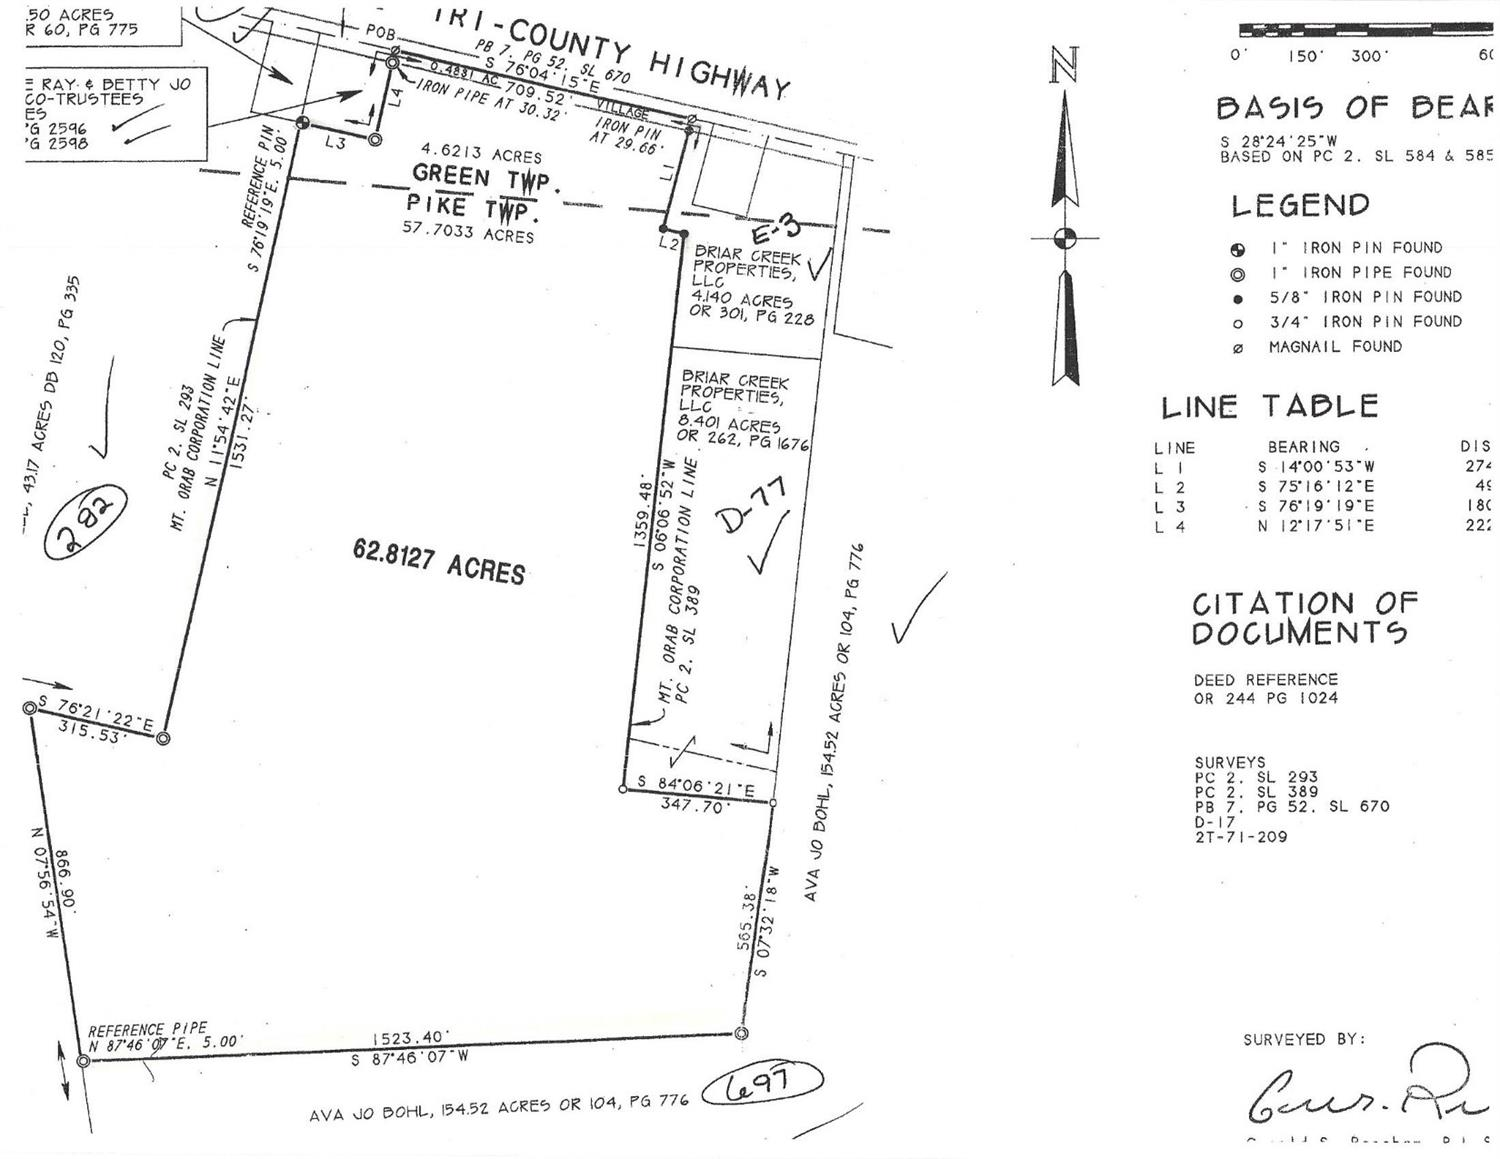 0 62.81ac Tri County Highway Pike Twp., OH